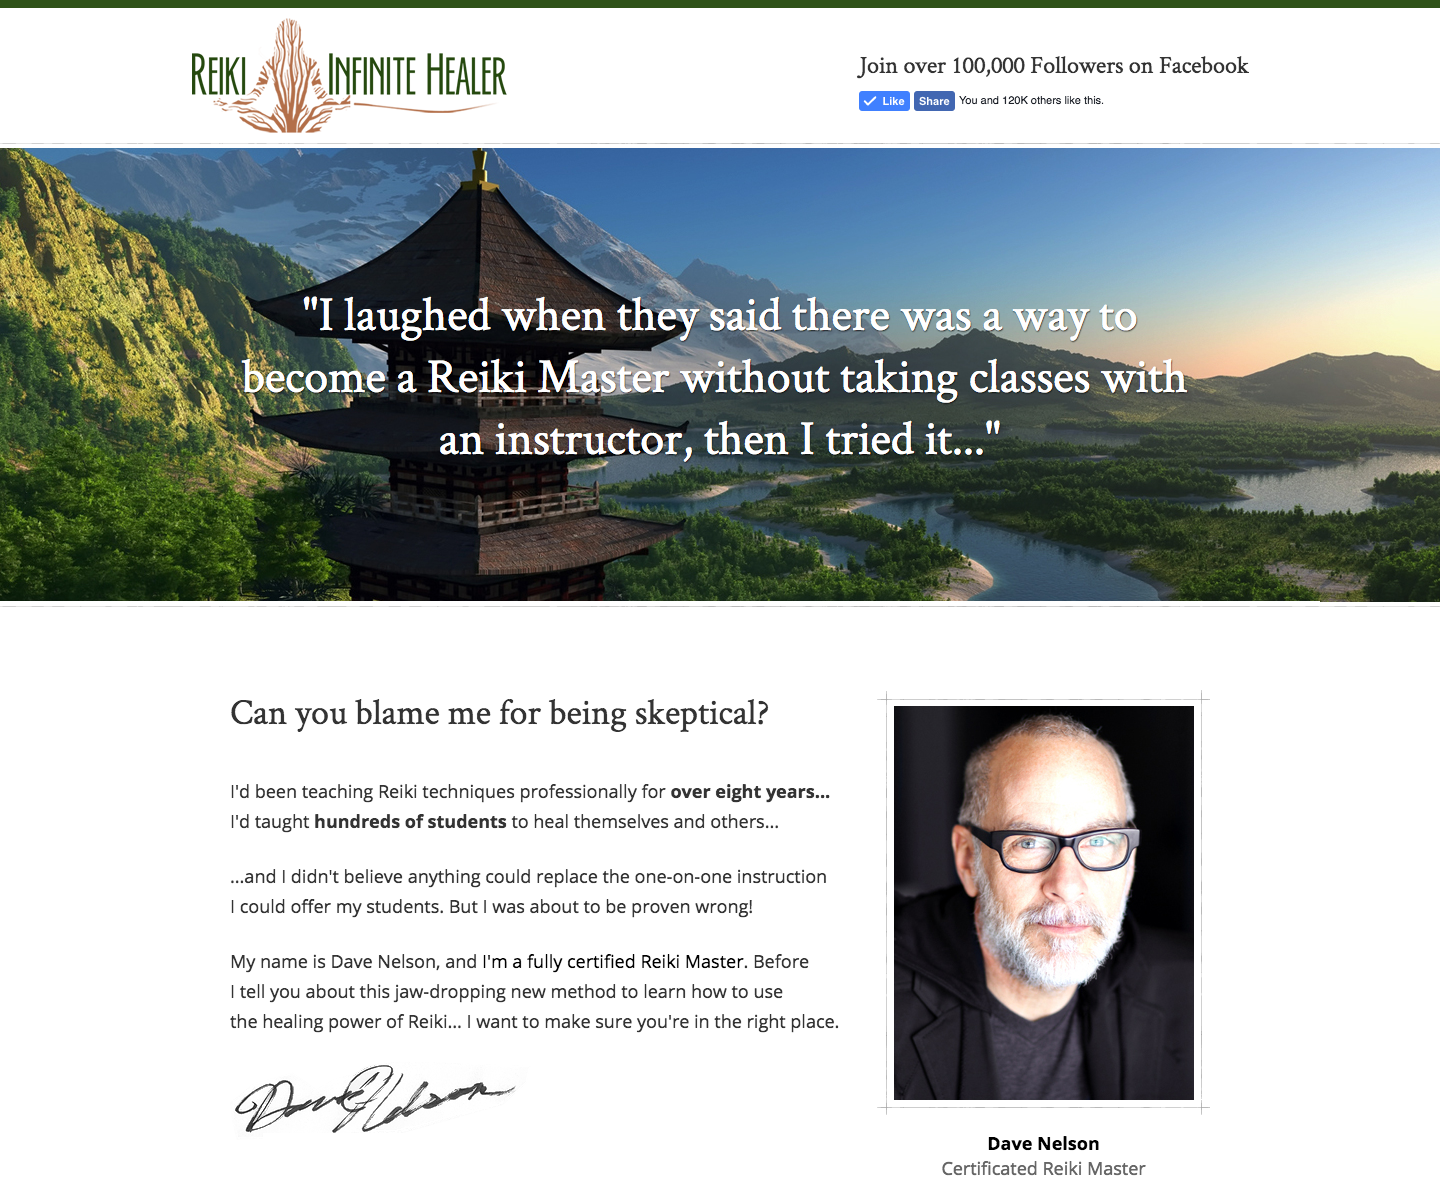 Reiki Infinite Healer Course Review - Kevin Johnson - Medium